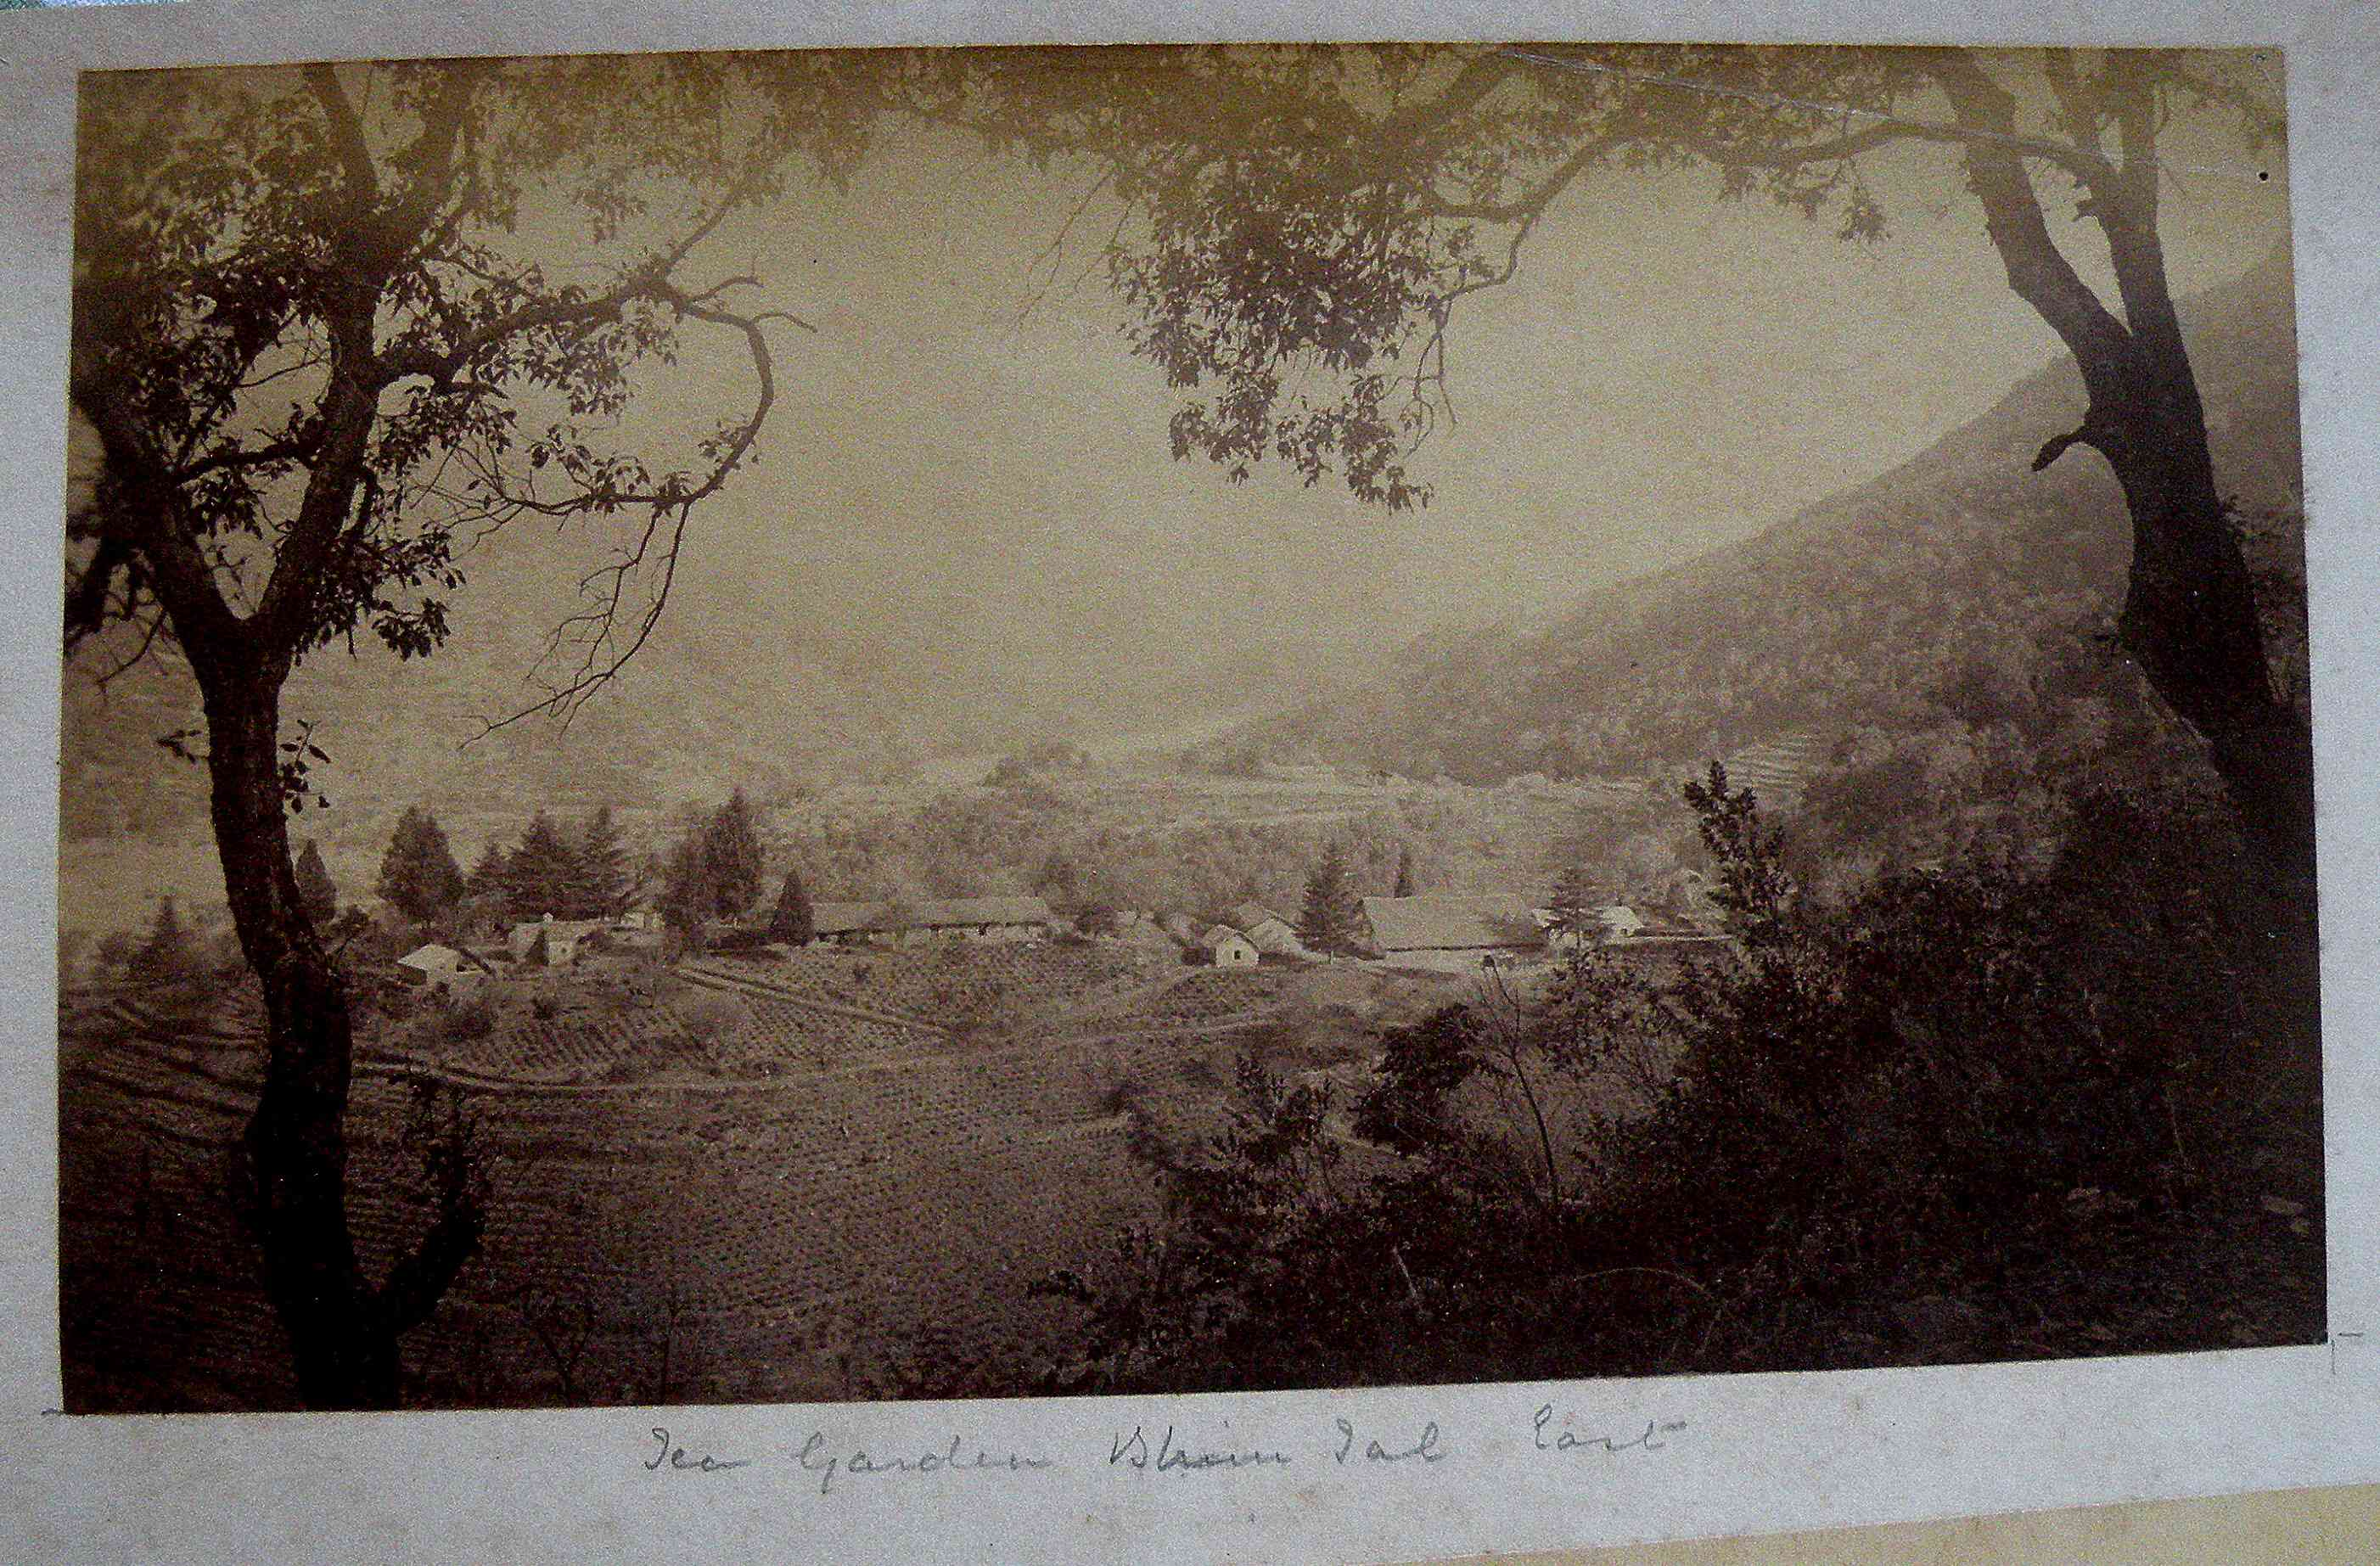 The Bhimtal forest estate around 1890. Photo courtesy Peter Smetacek